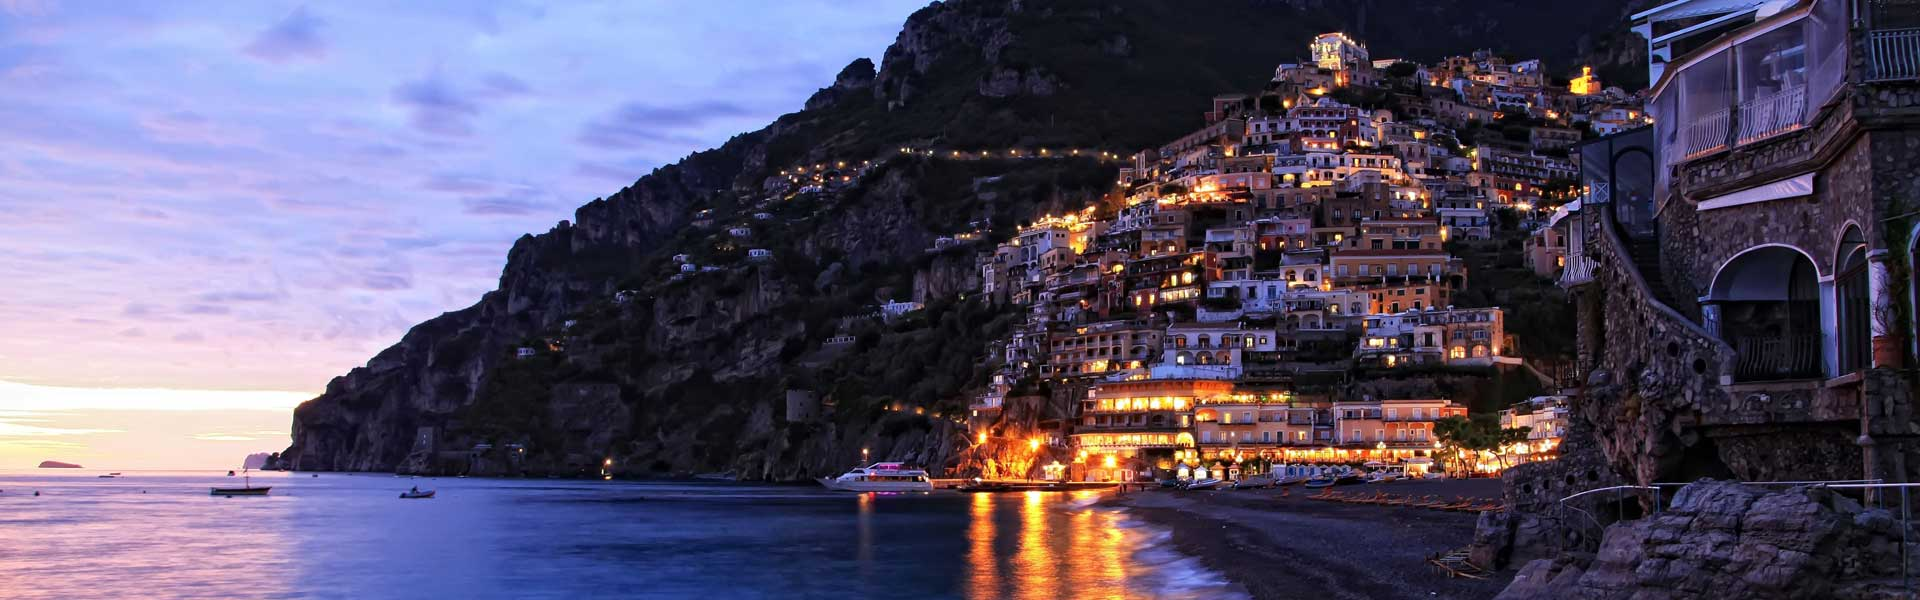 small-group-tours_sicily-rome-amalfi-coast-tour